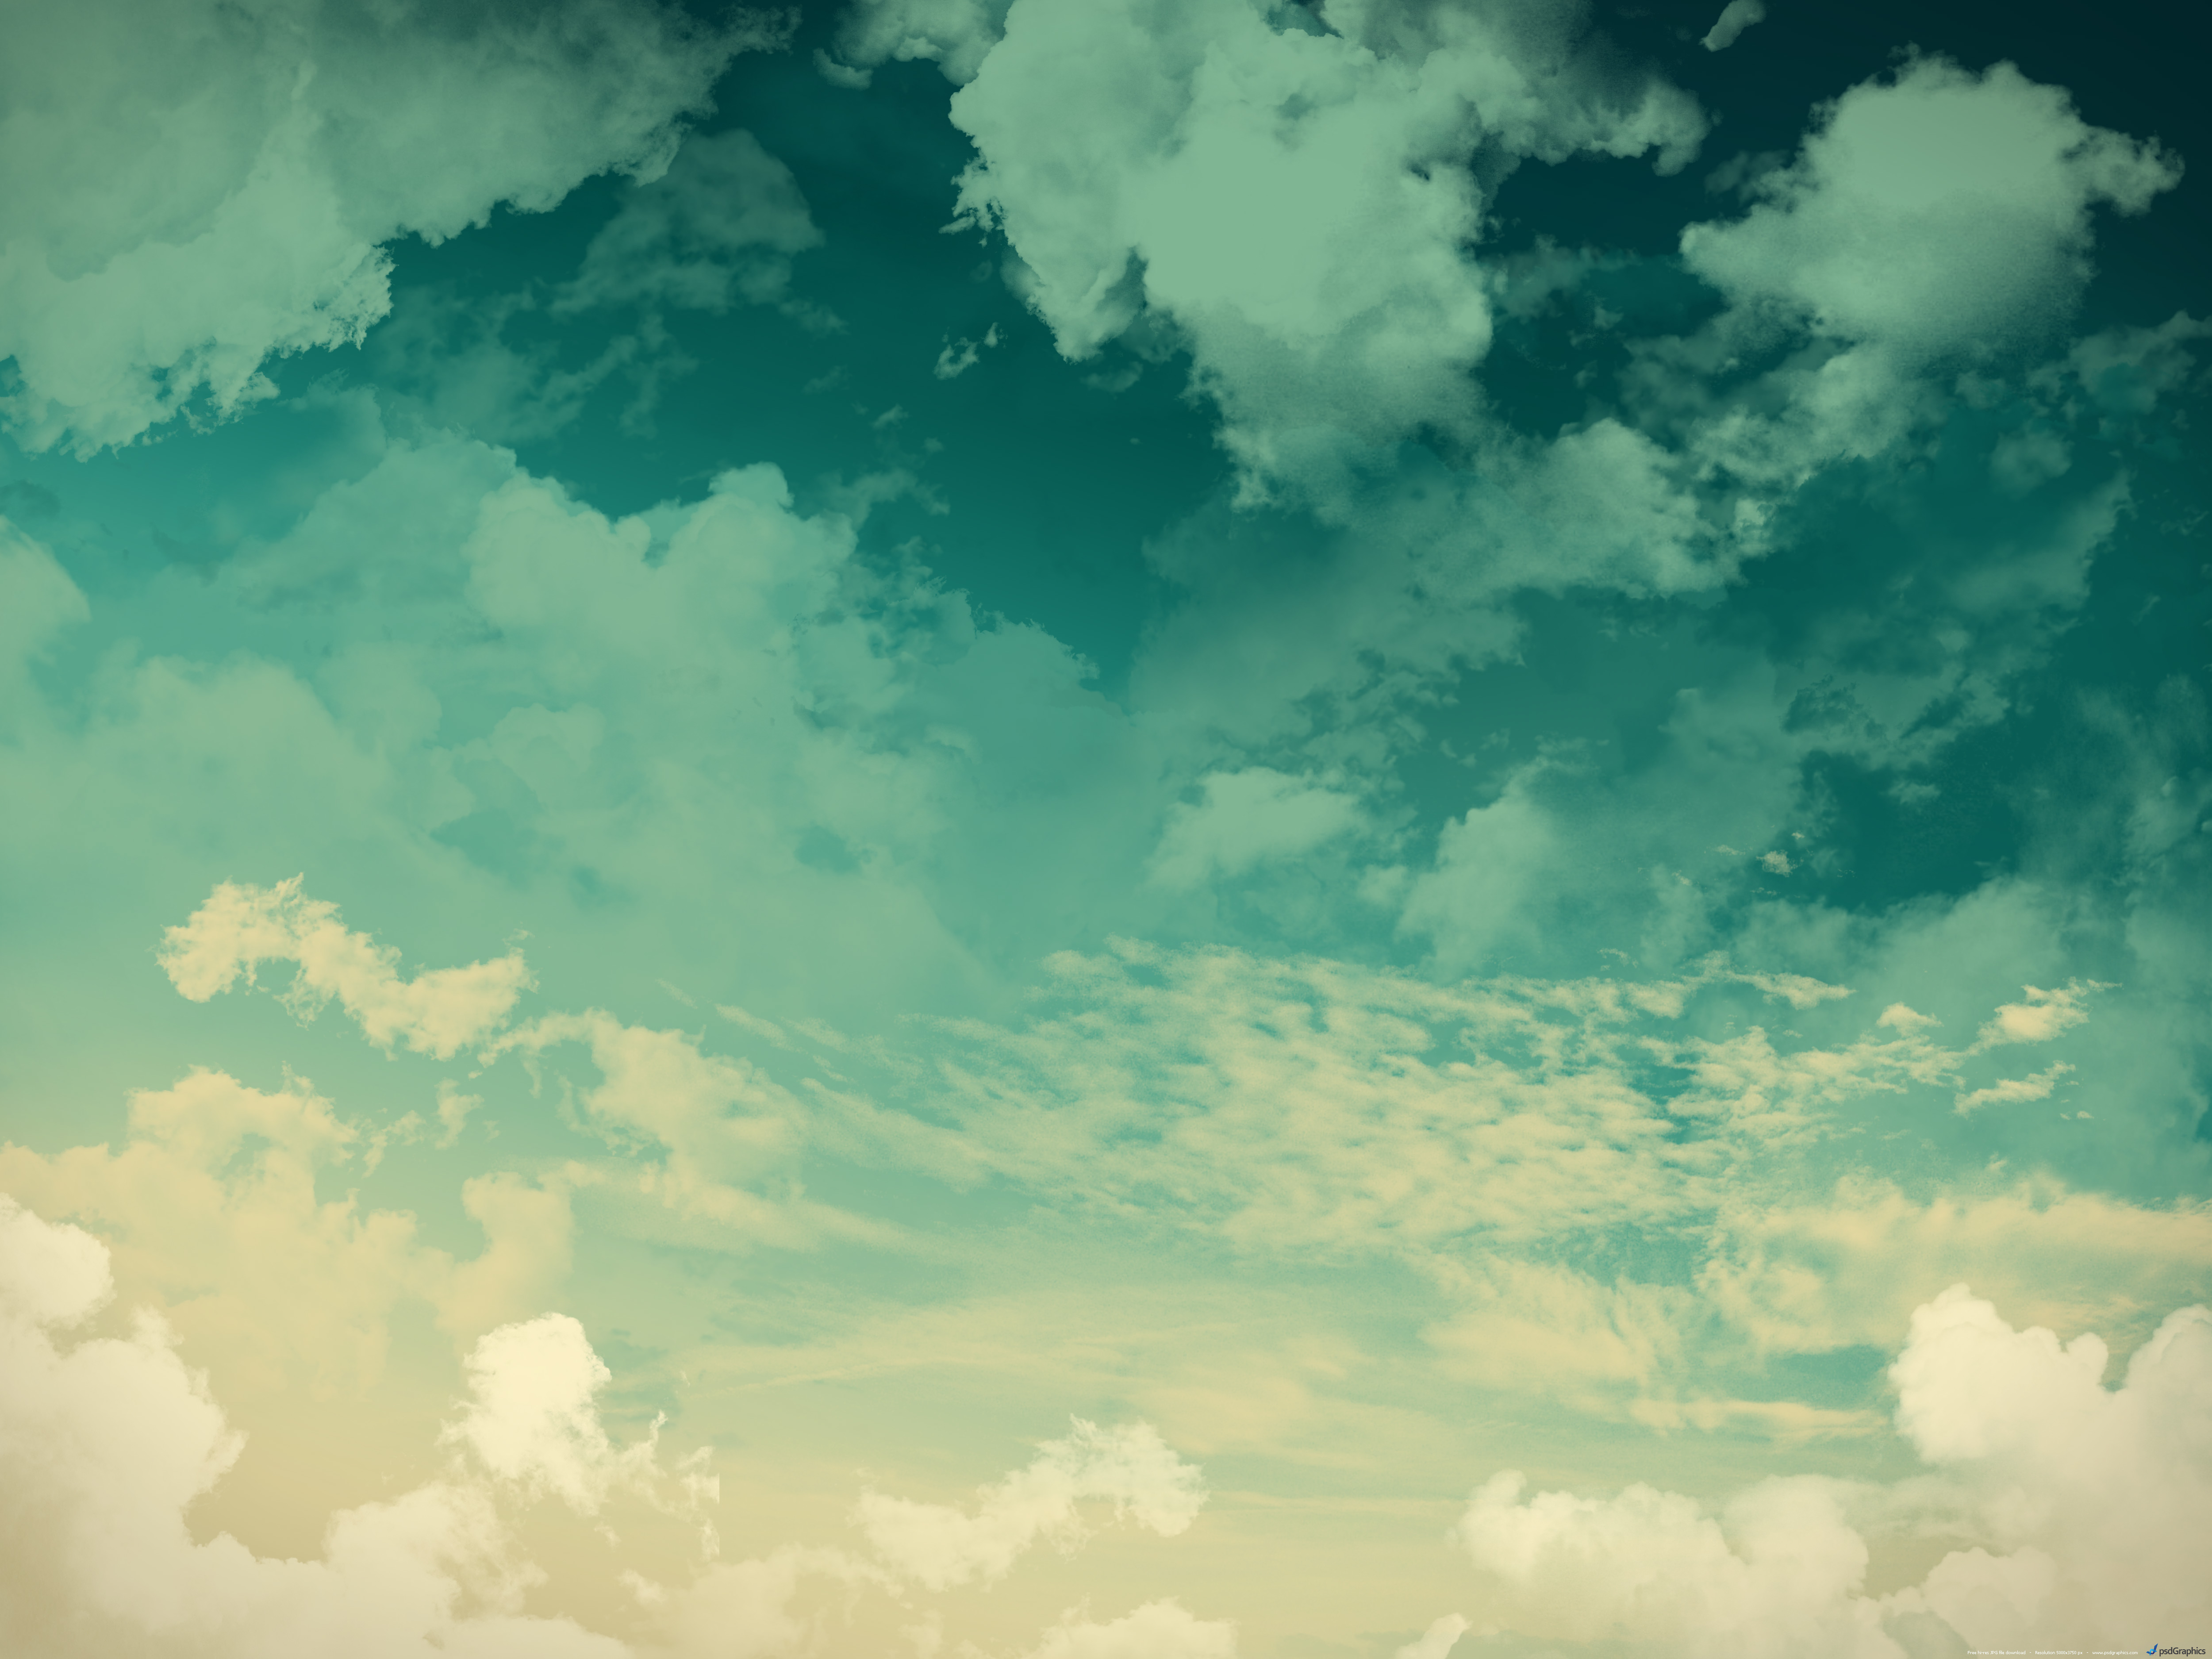 Grunge sky background green clouds